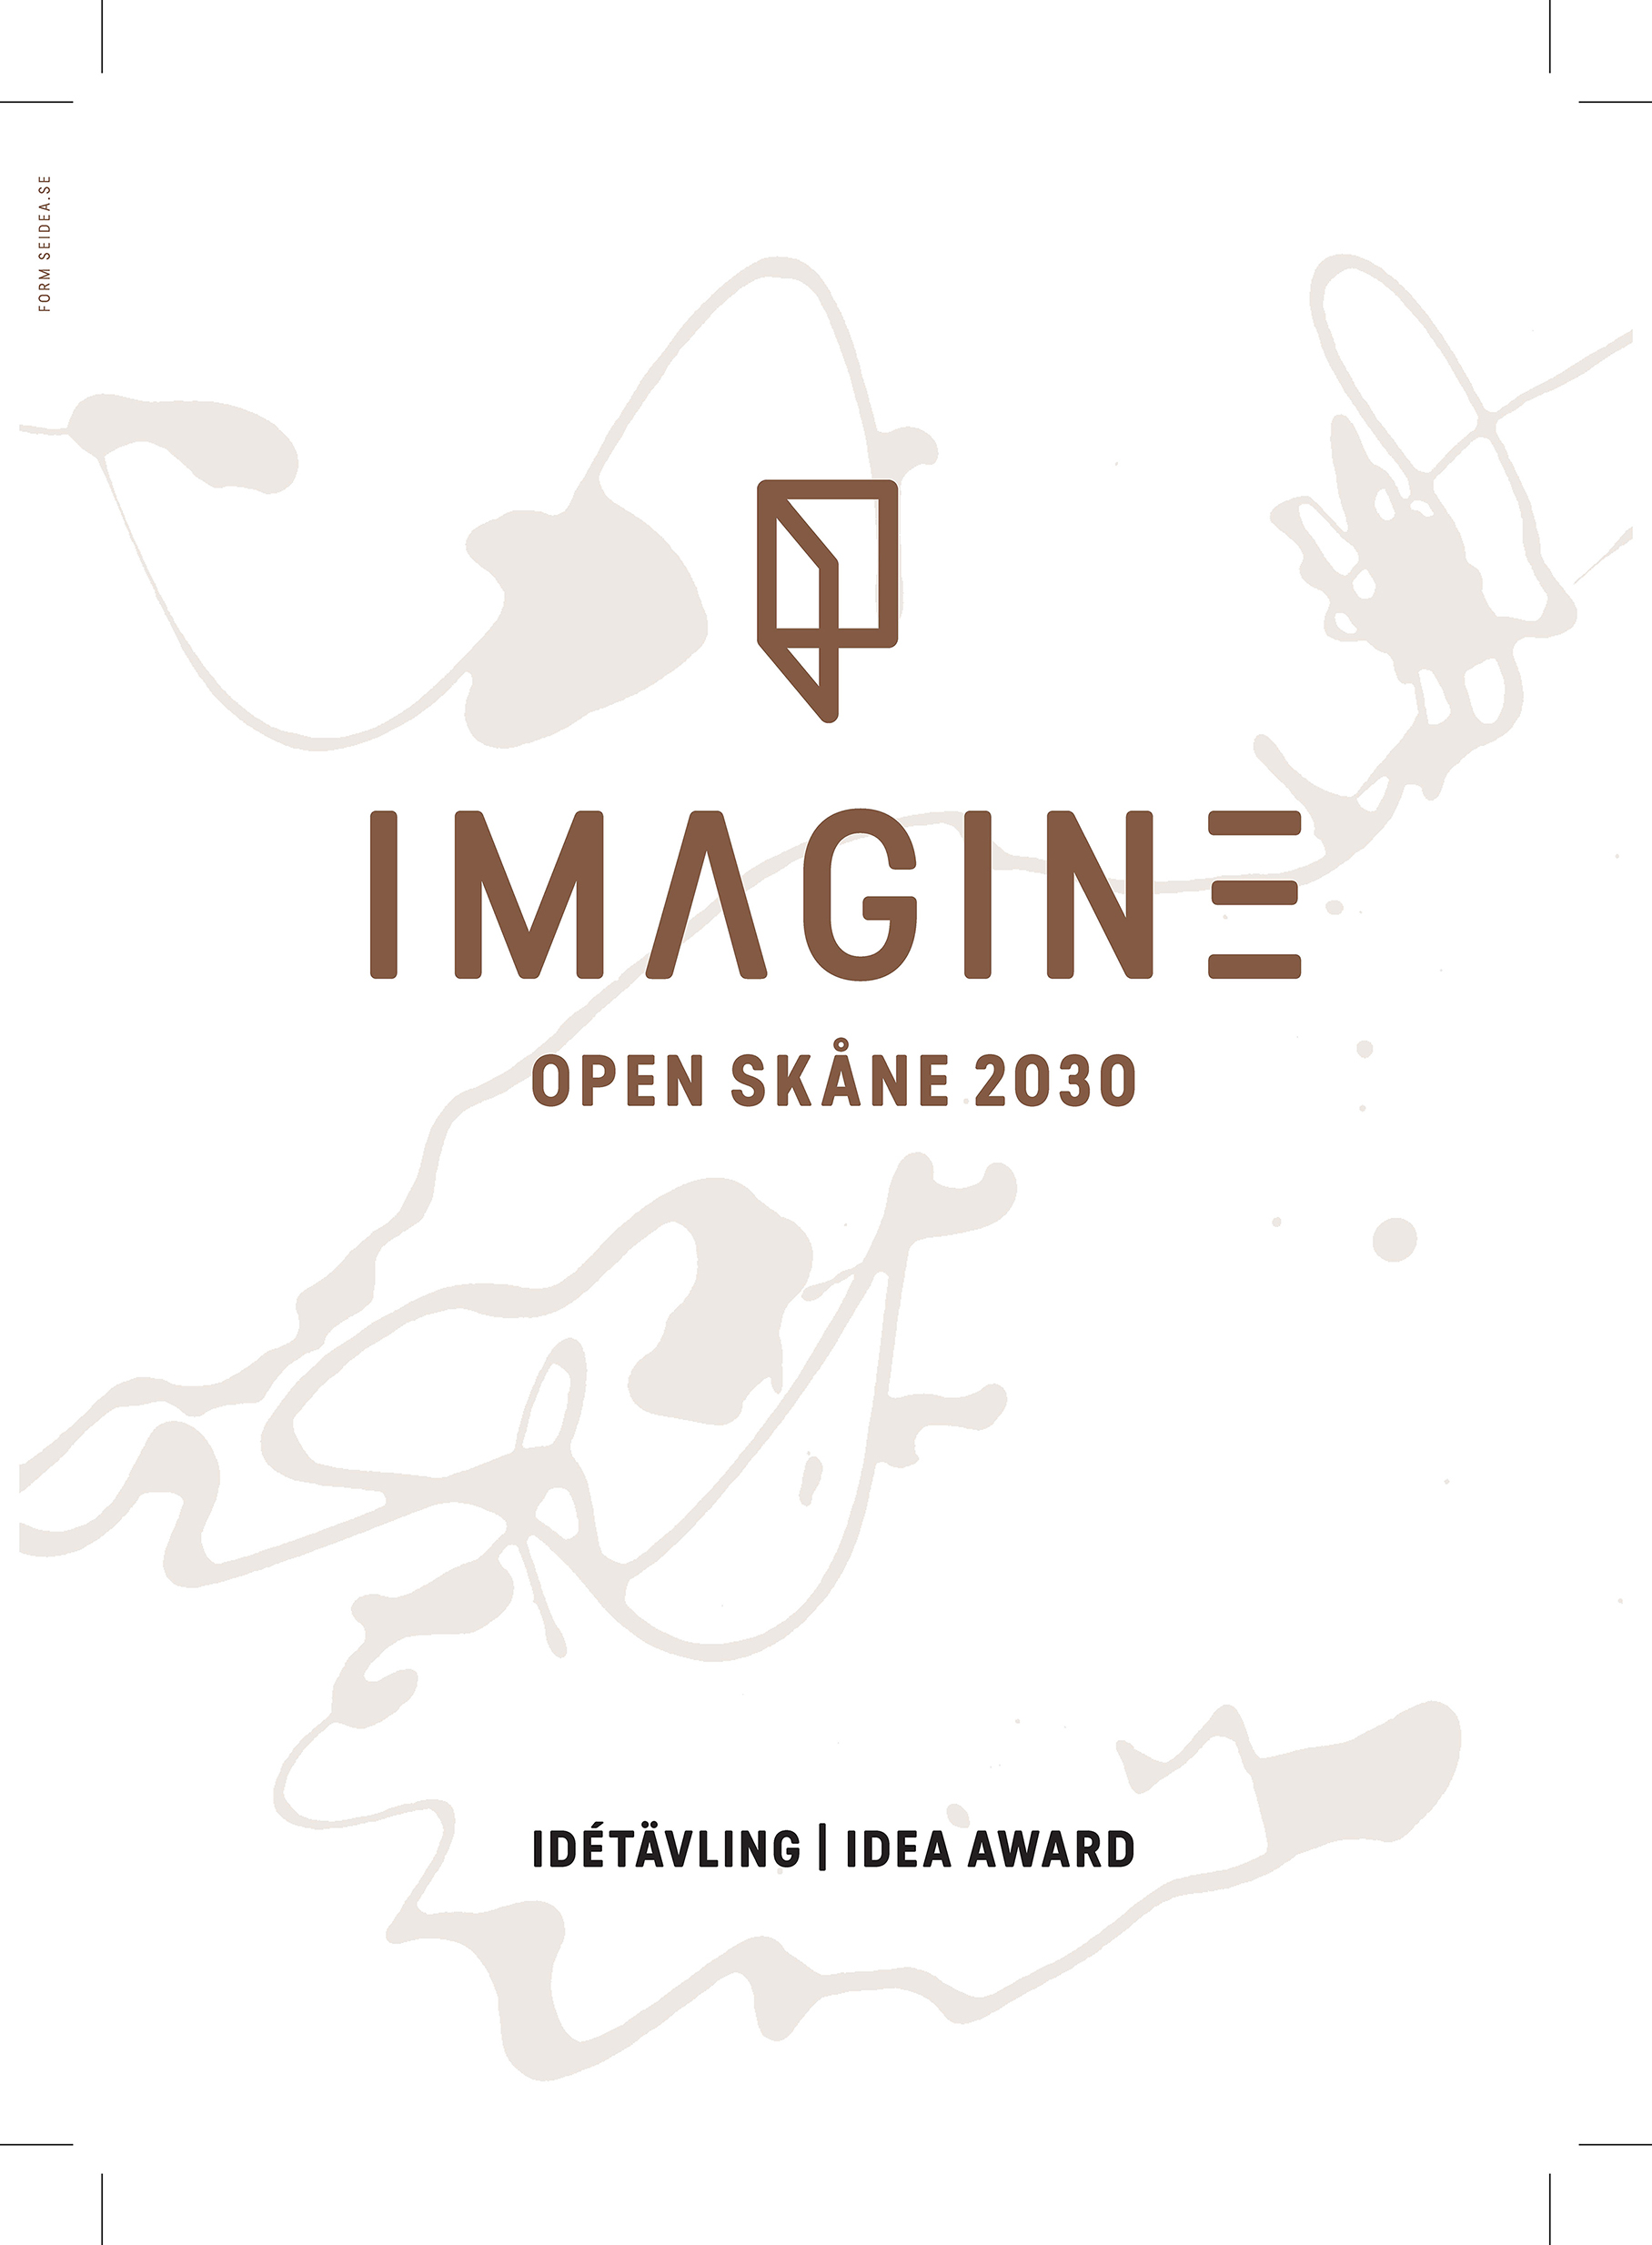 imagine_20151023_ori_page_01